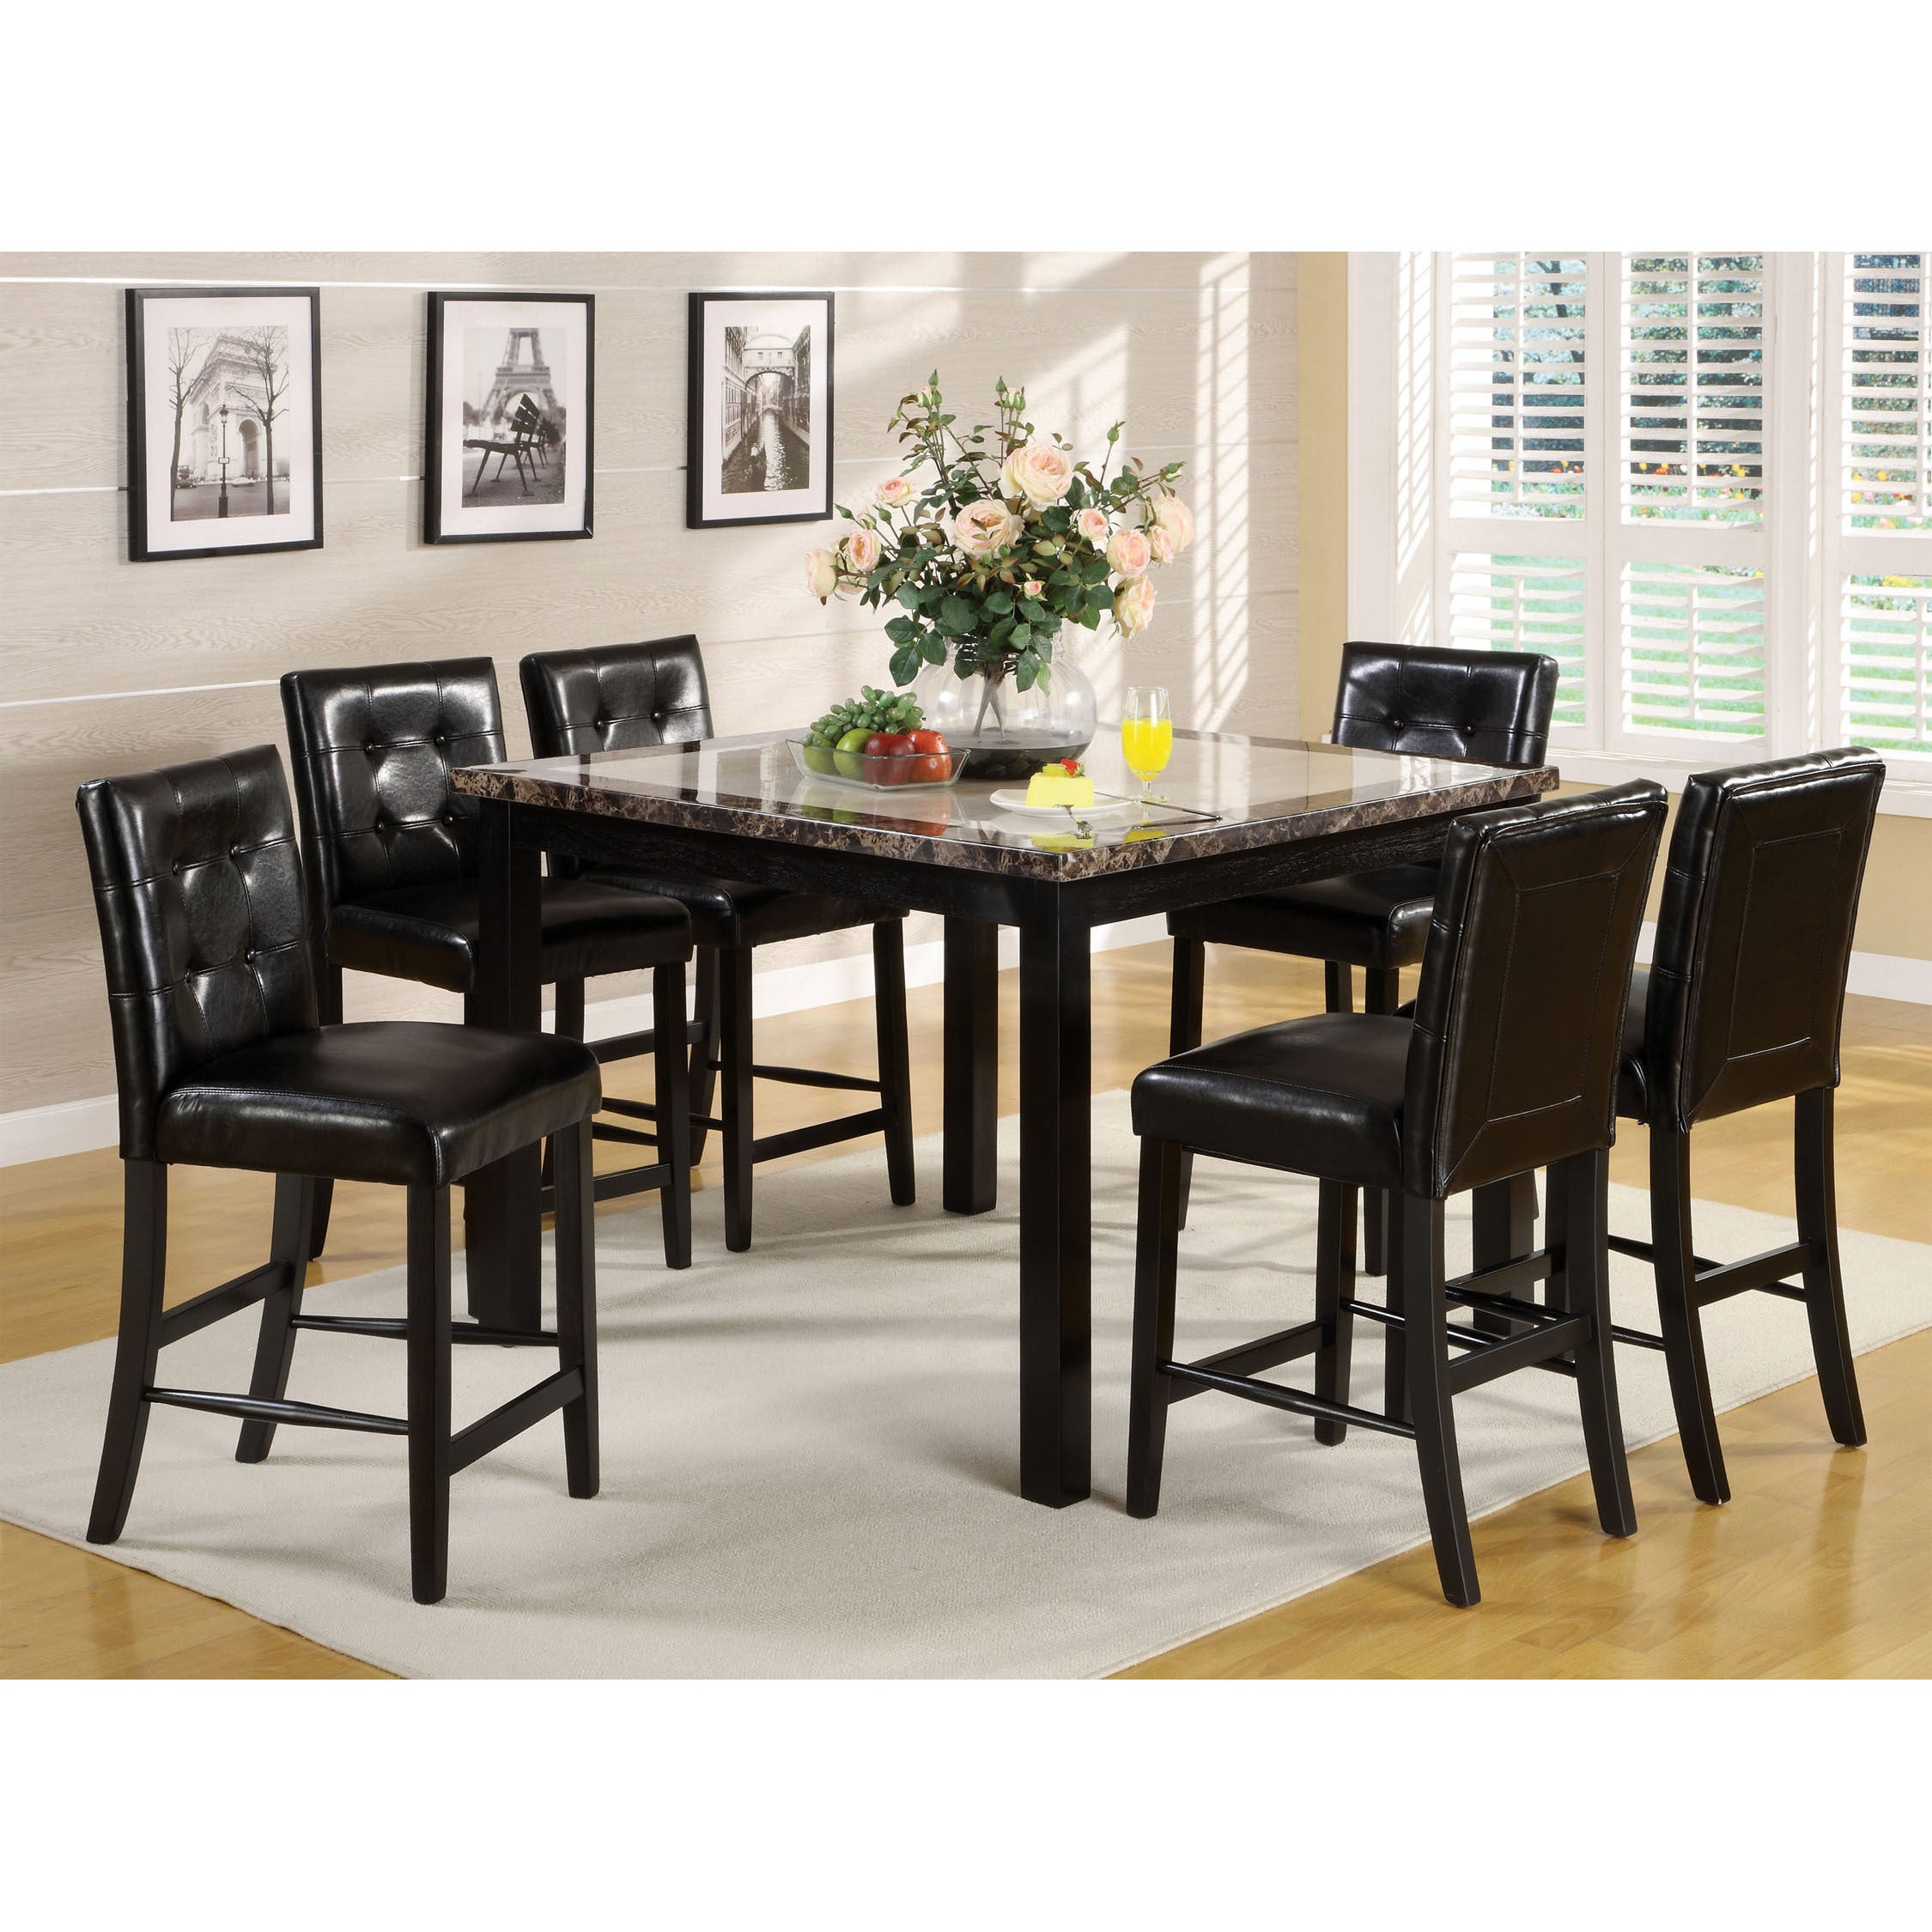 Furniture Of America Berthelli Black 7 Piece Counter Height Dining Set Overstock 9422603